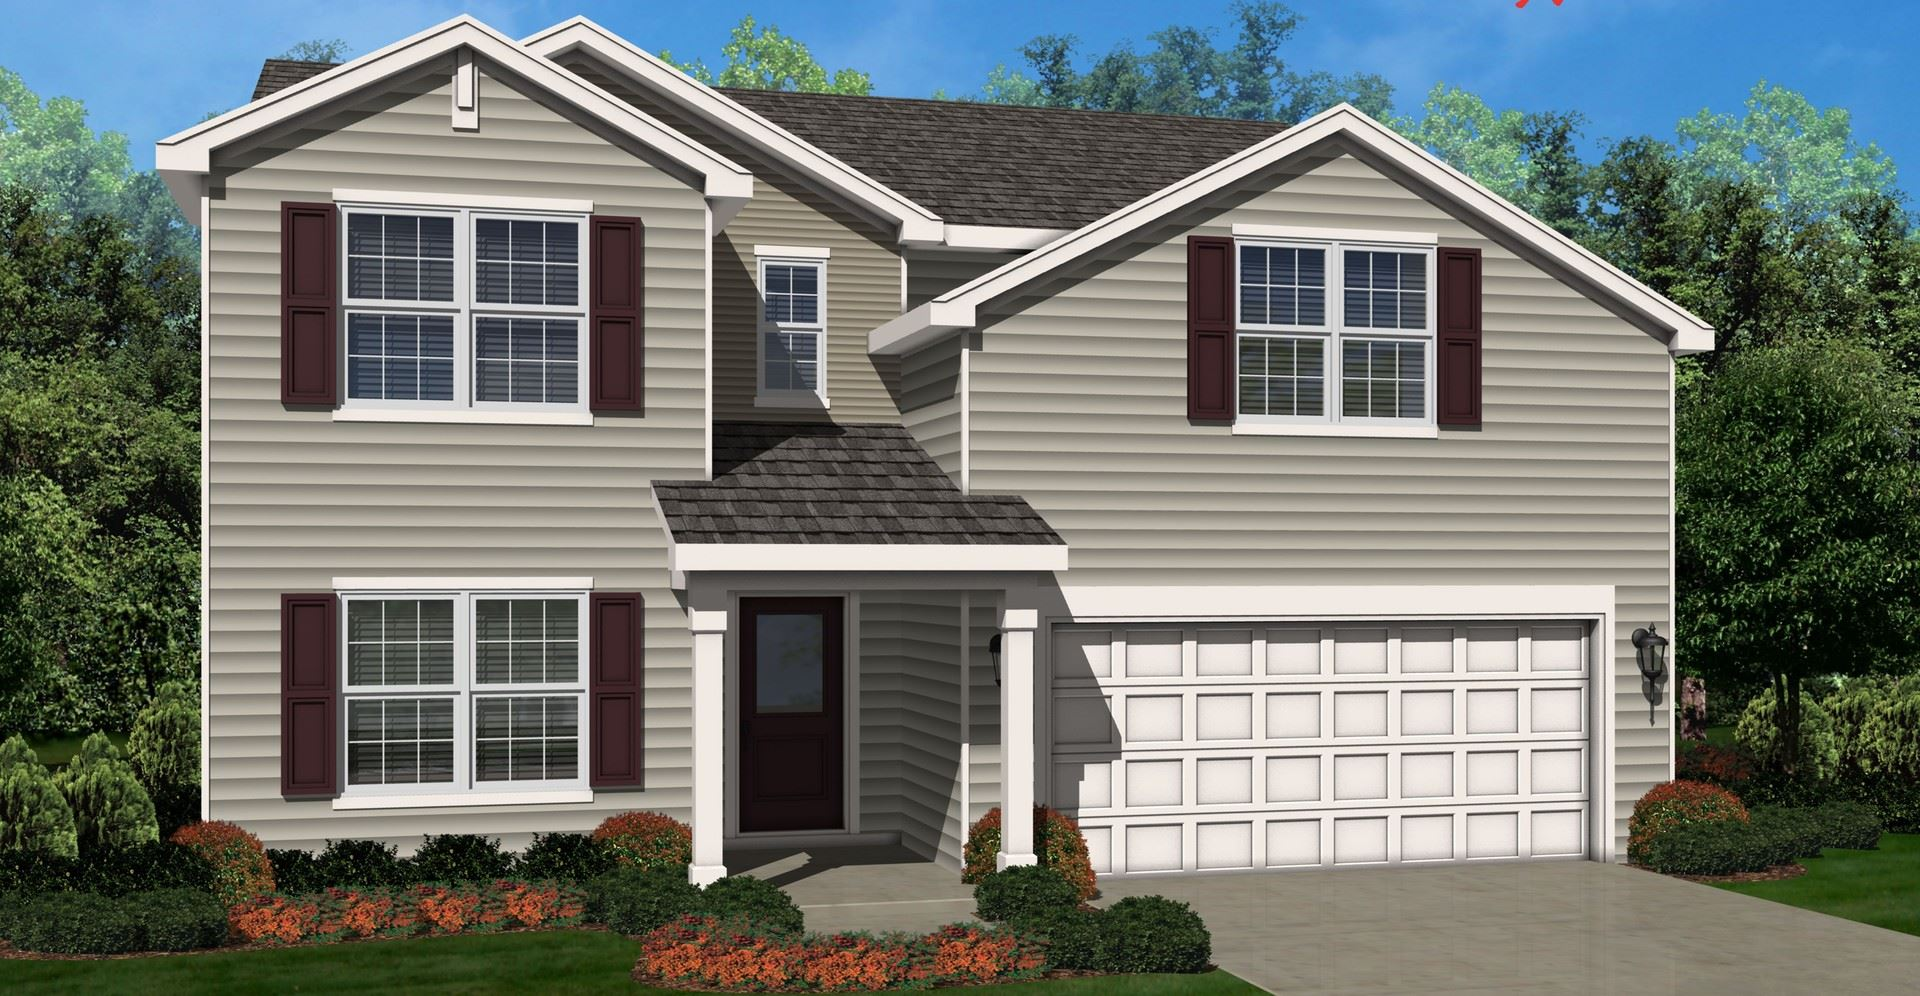 2469 Fairview Circle, Woodstock, IL 60098 - #: 10922520